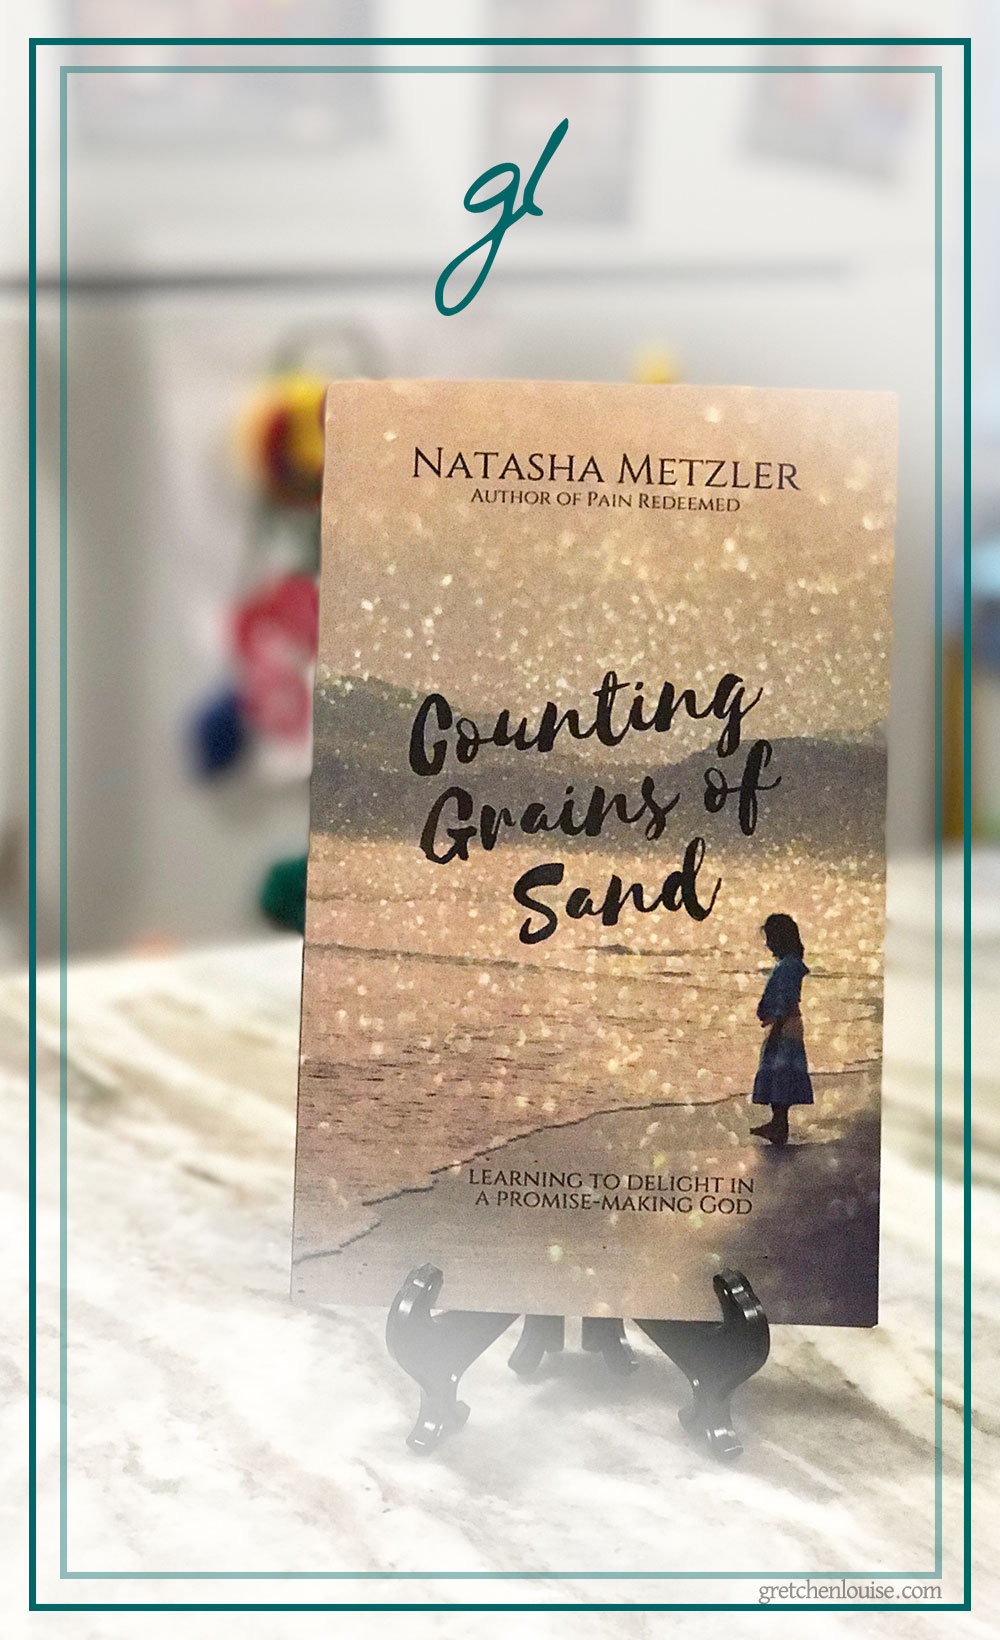 In Counting Grains of Sand, I found not just comfort for the secret aches of my heart, but a challenge to delight in the surrender of my dreams and pursue peace that's not dependent on my circumstances. Natasha's story buoys my faith while I watch Him write my own. via @GretLouise